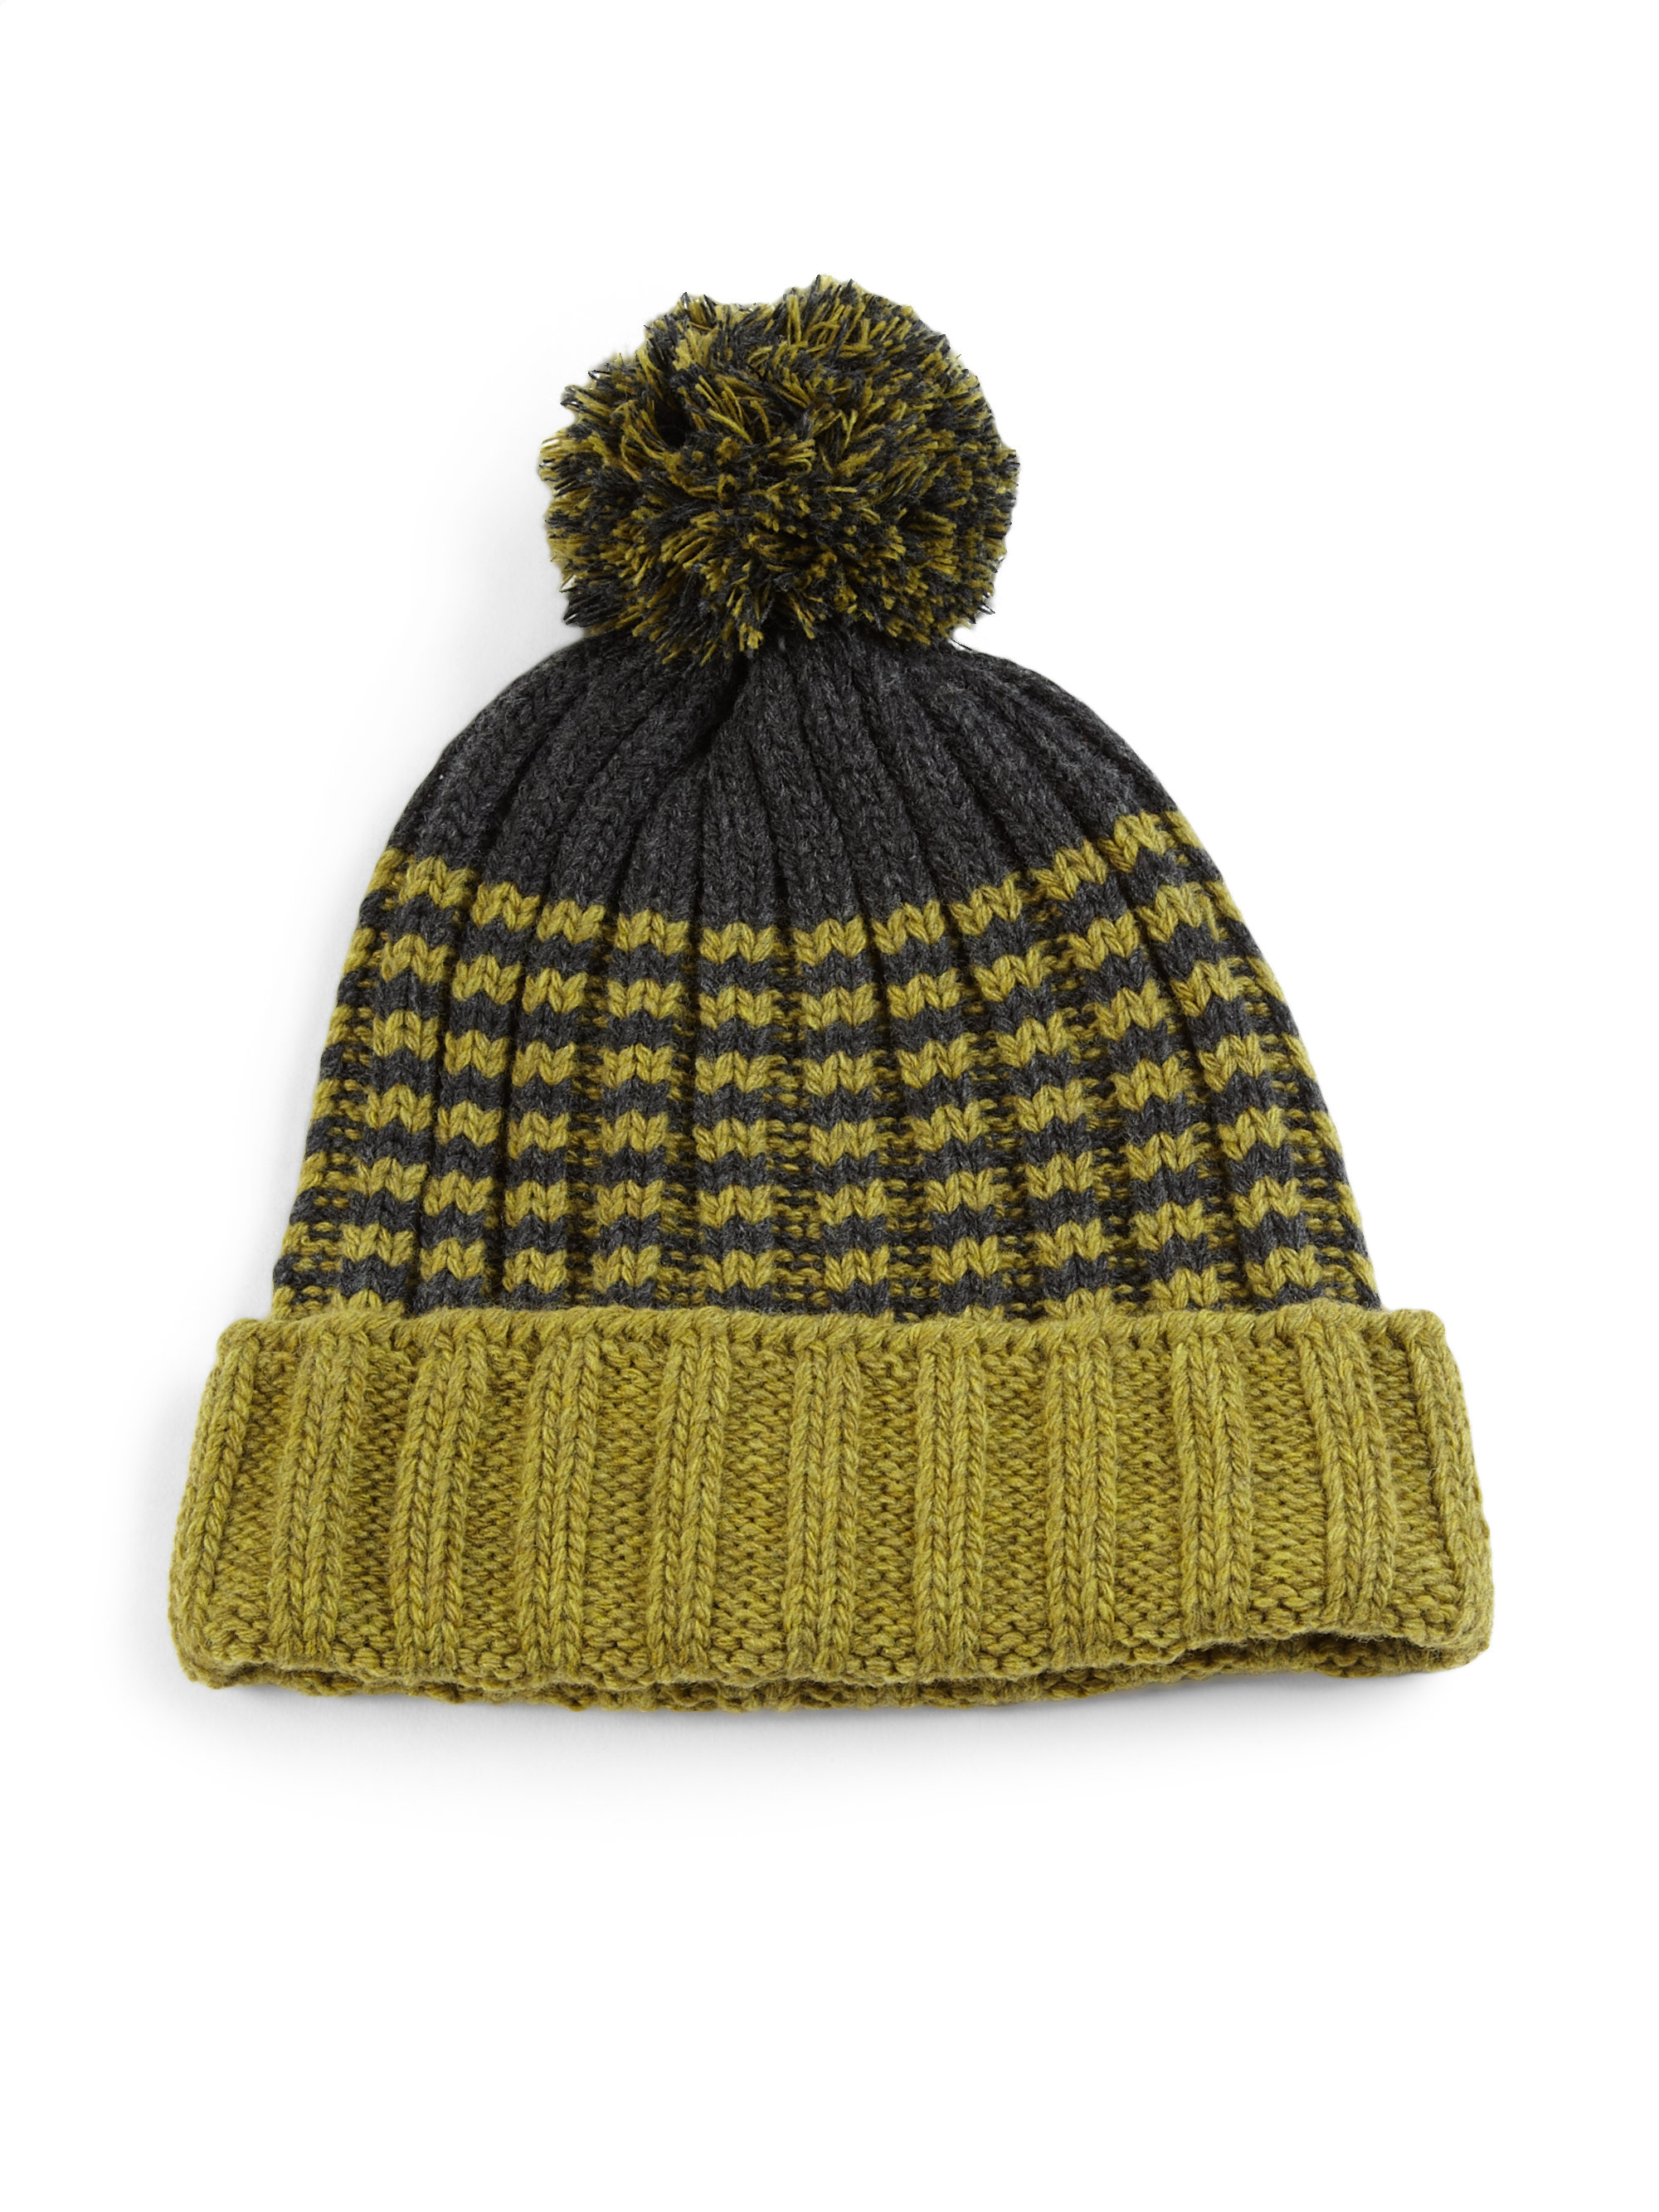 Lyst Gucci Knit Wool Pom Pom Hat In Green